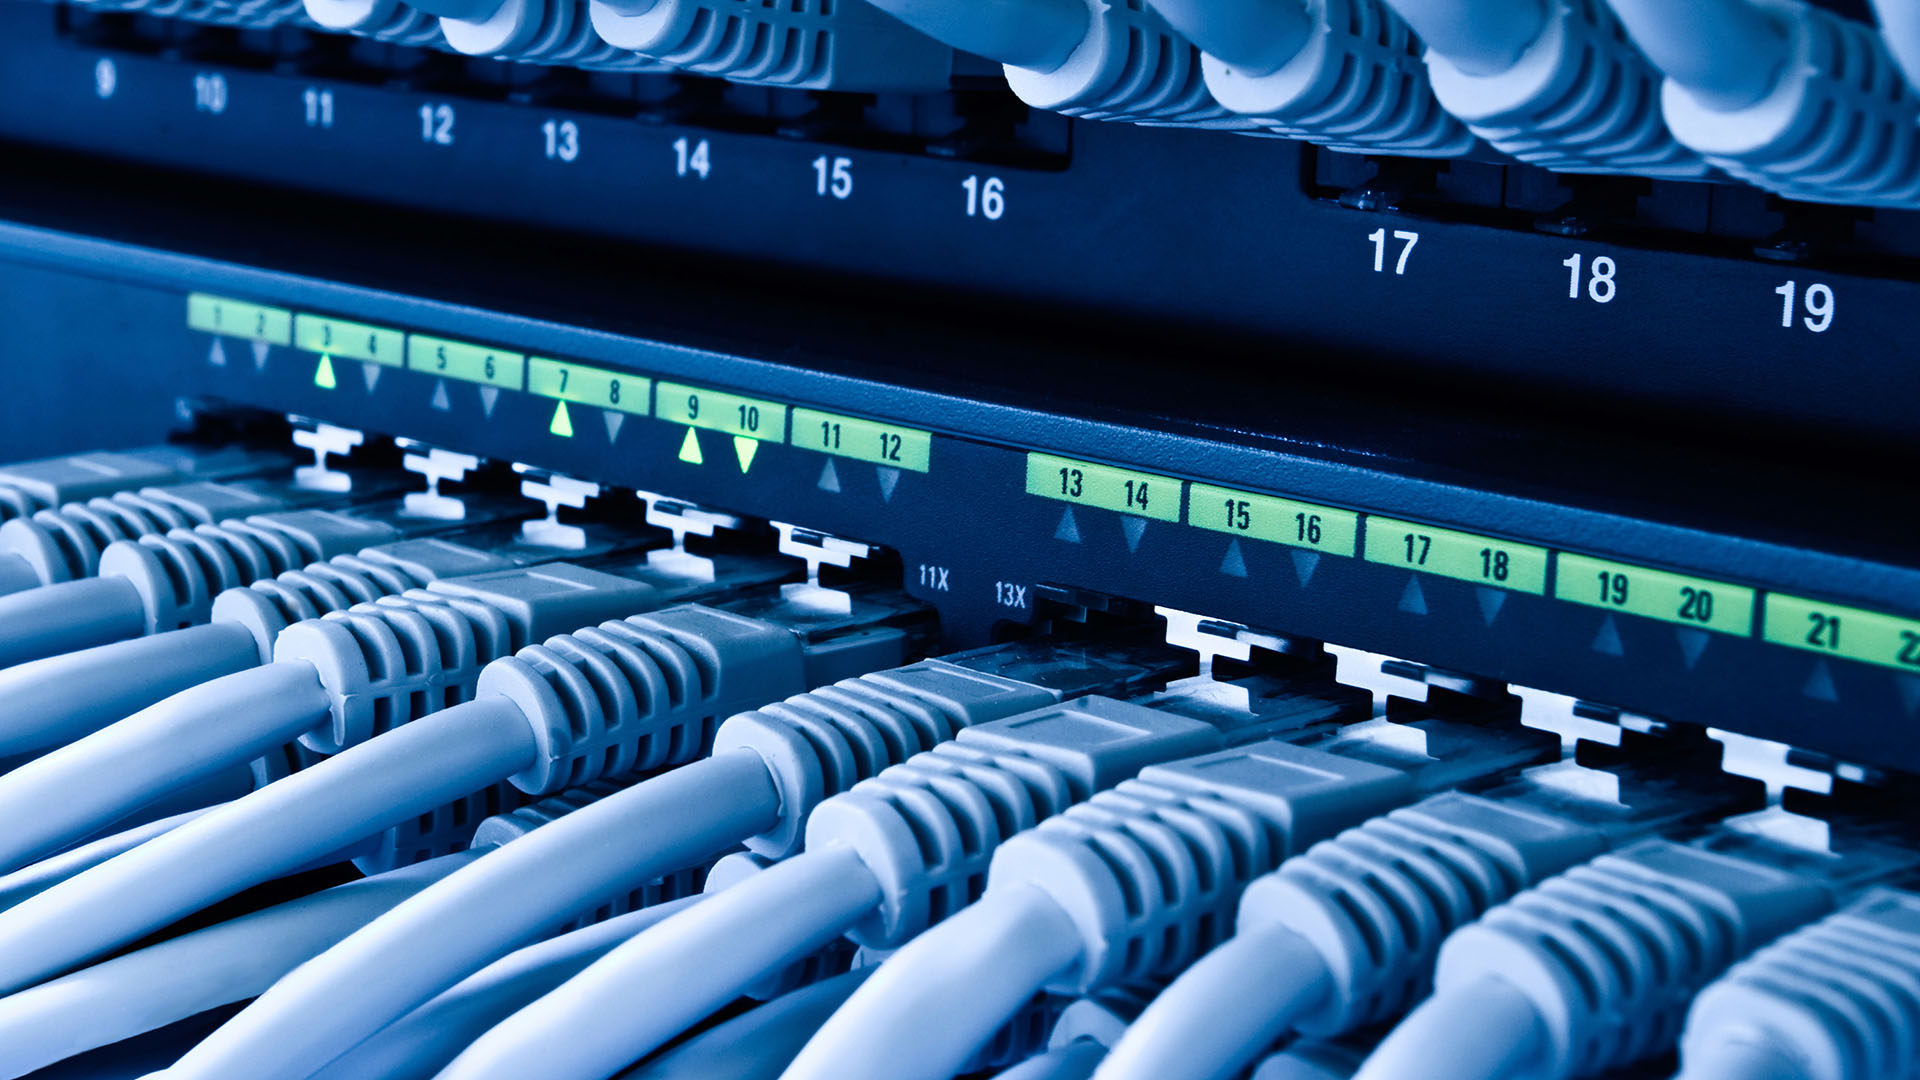 Harrodsburg Kentucky High Quality Voice & Data Network Cabling Services